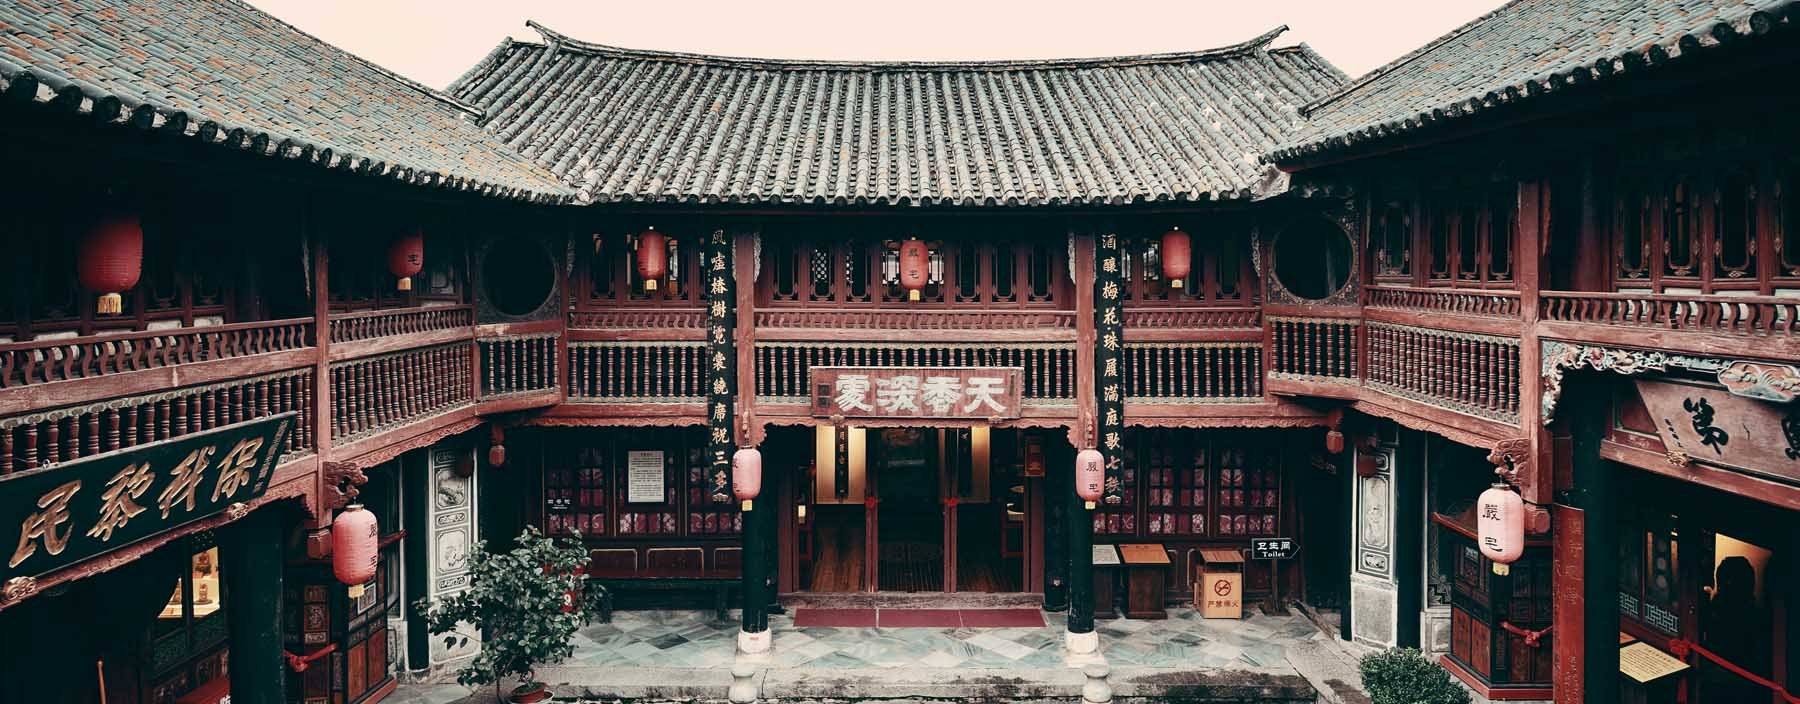 cn, dali, local bai style courtyard in dali.jpg